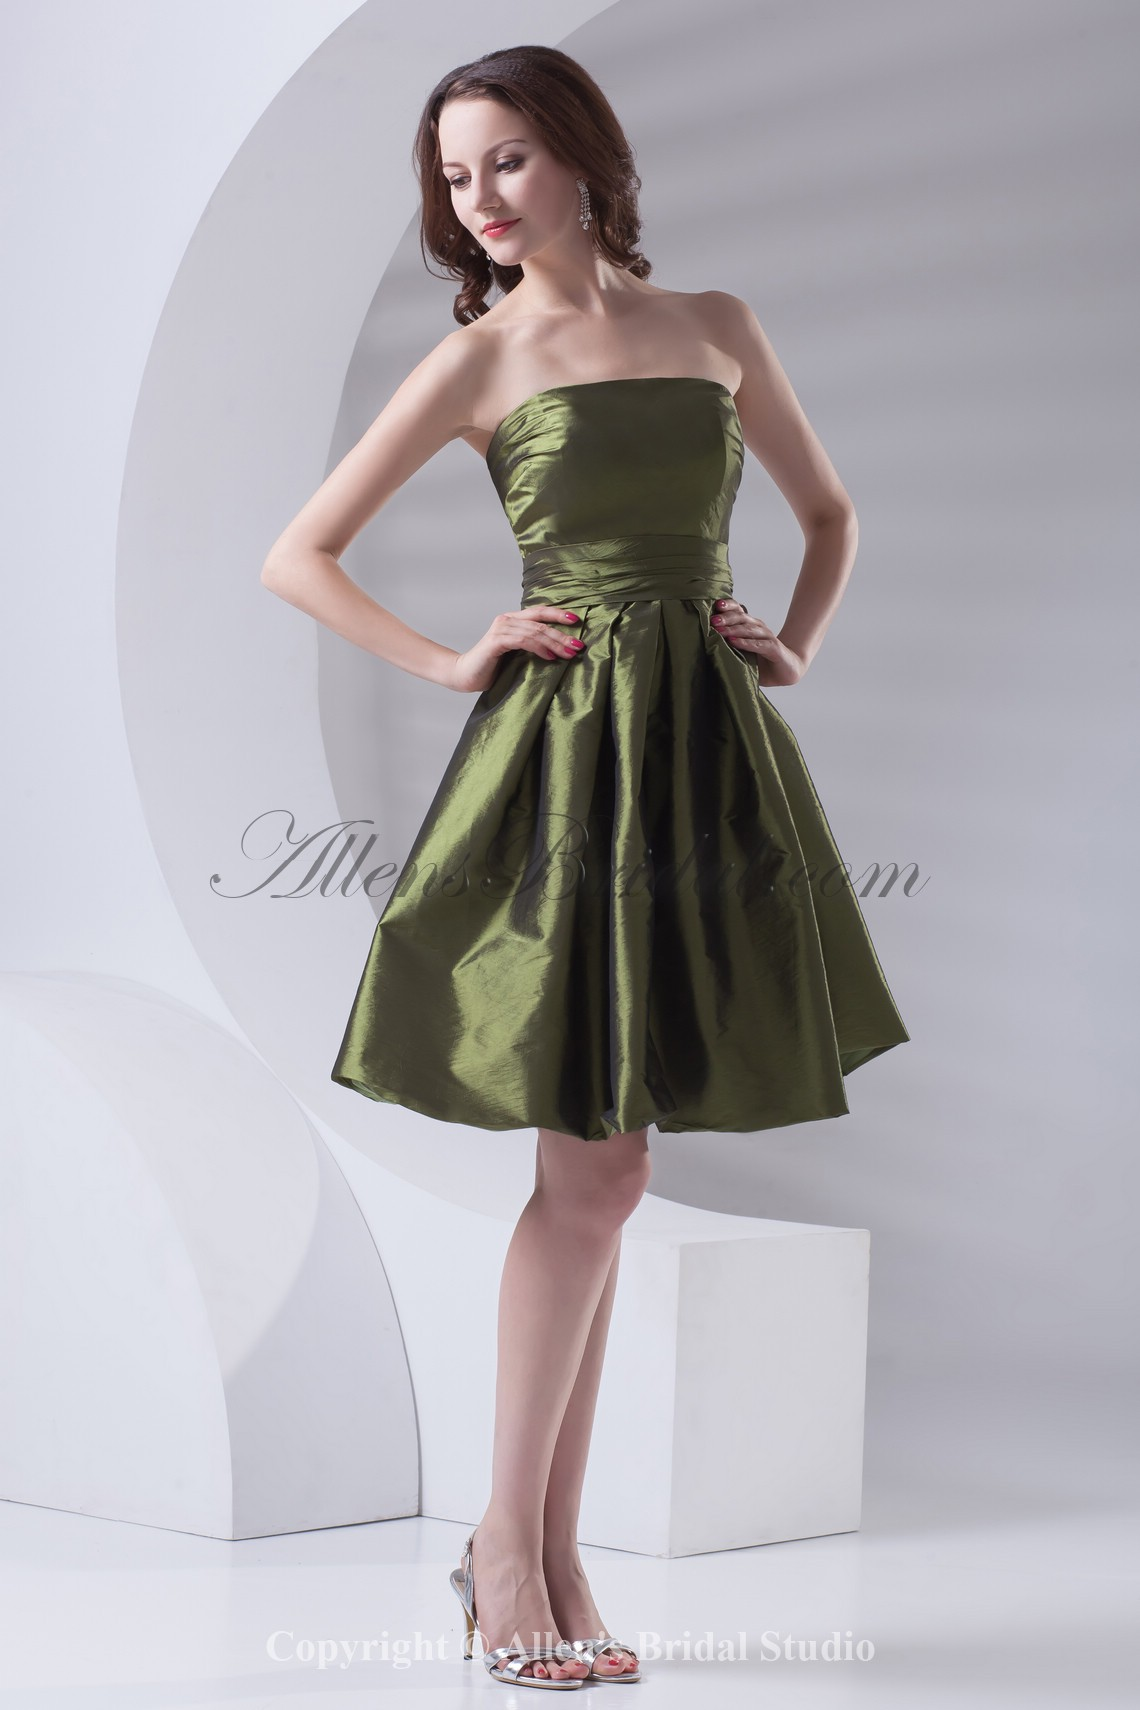 /408-3262/taffeta-strapless-neckline-a-line-knee-length-cocktail-dress.jpg